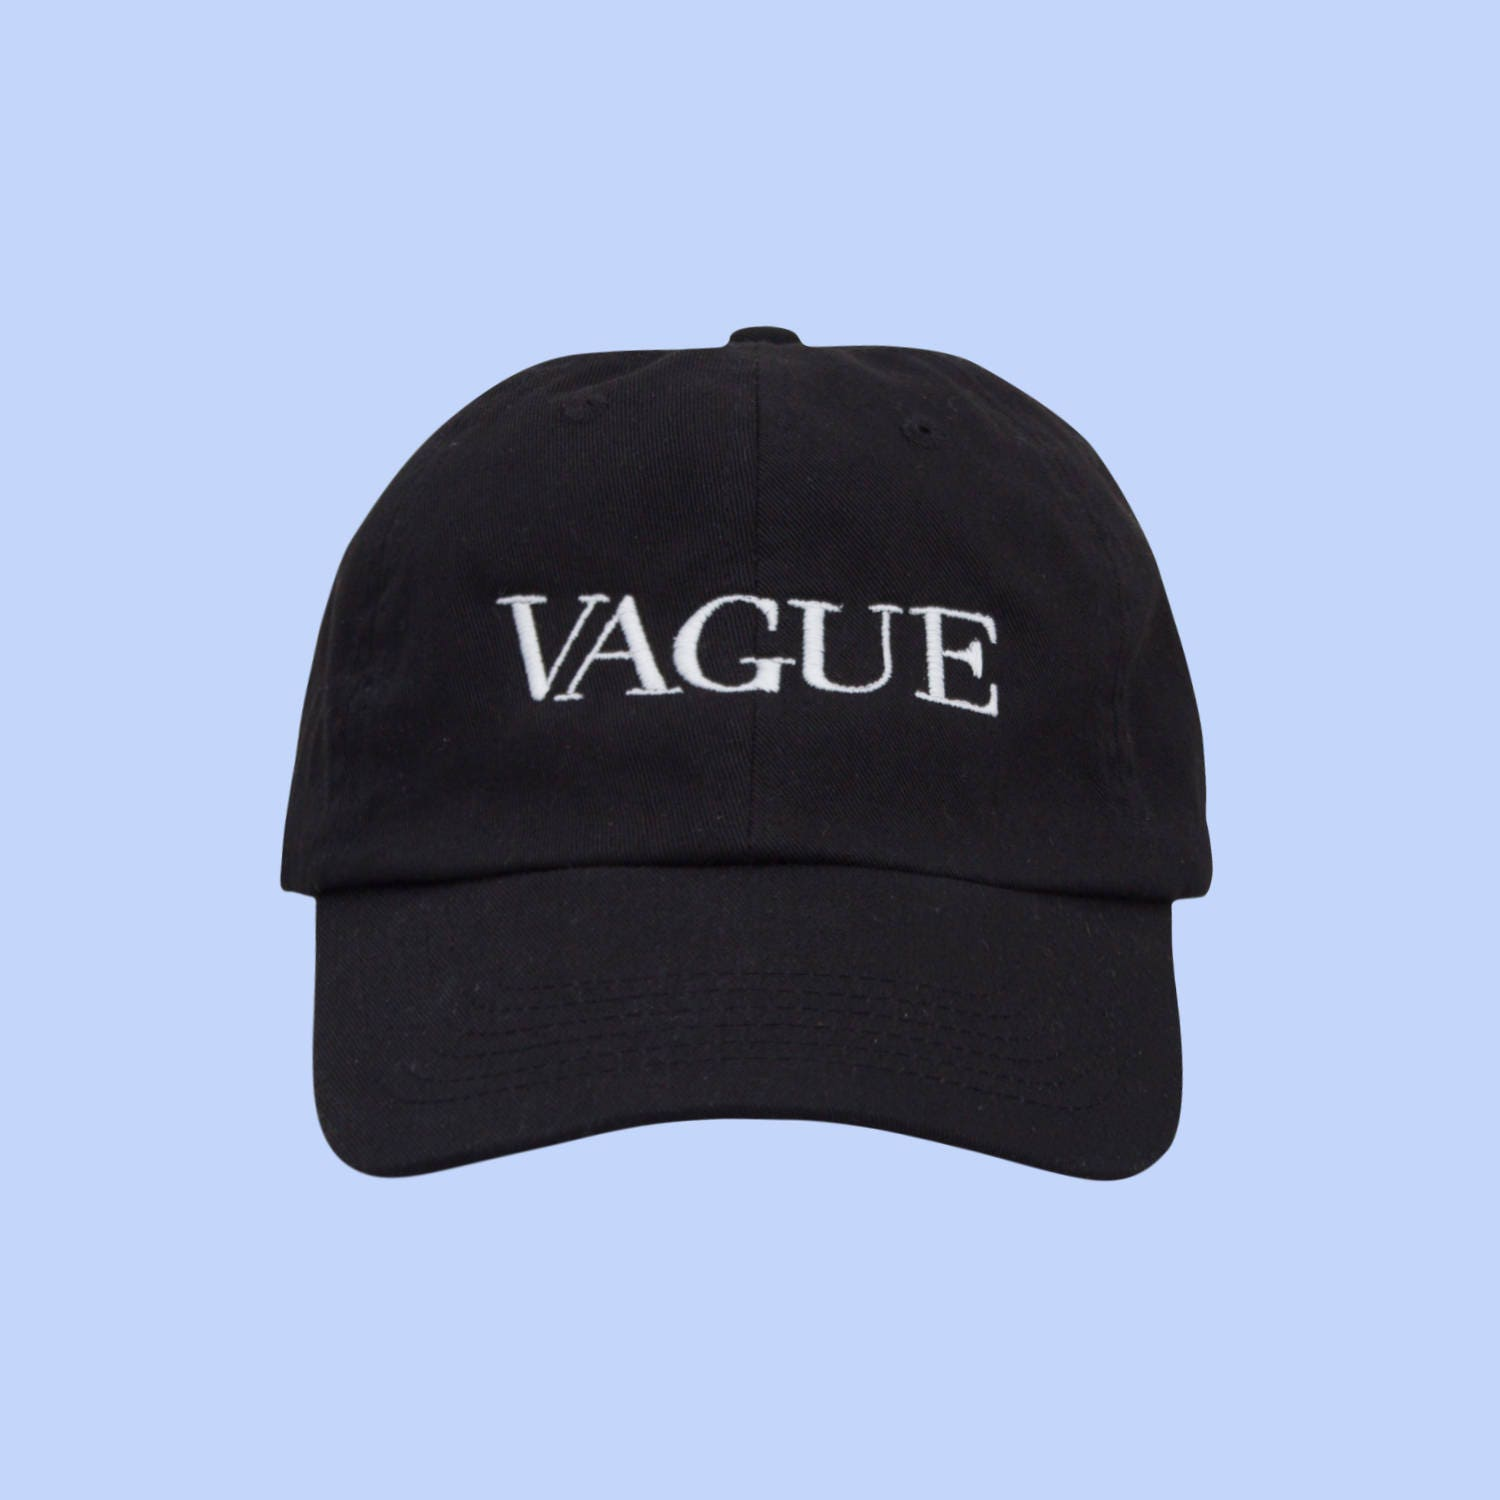 Dad Hat Aesthetic Clothing Tumblr Dad Hat 90s Hat Baseball Cap Tumblr Fashion Instagram ...